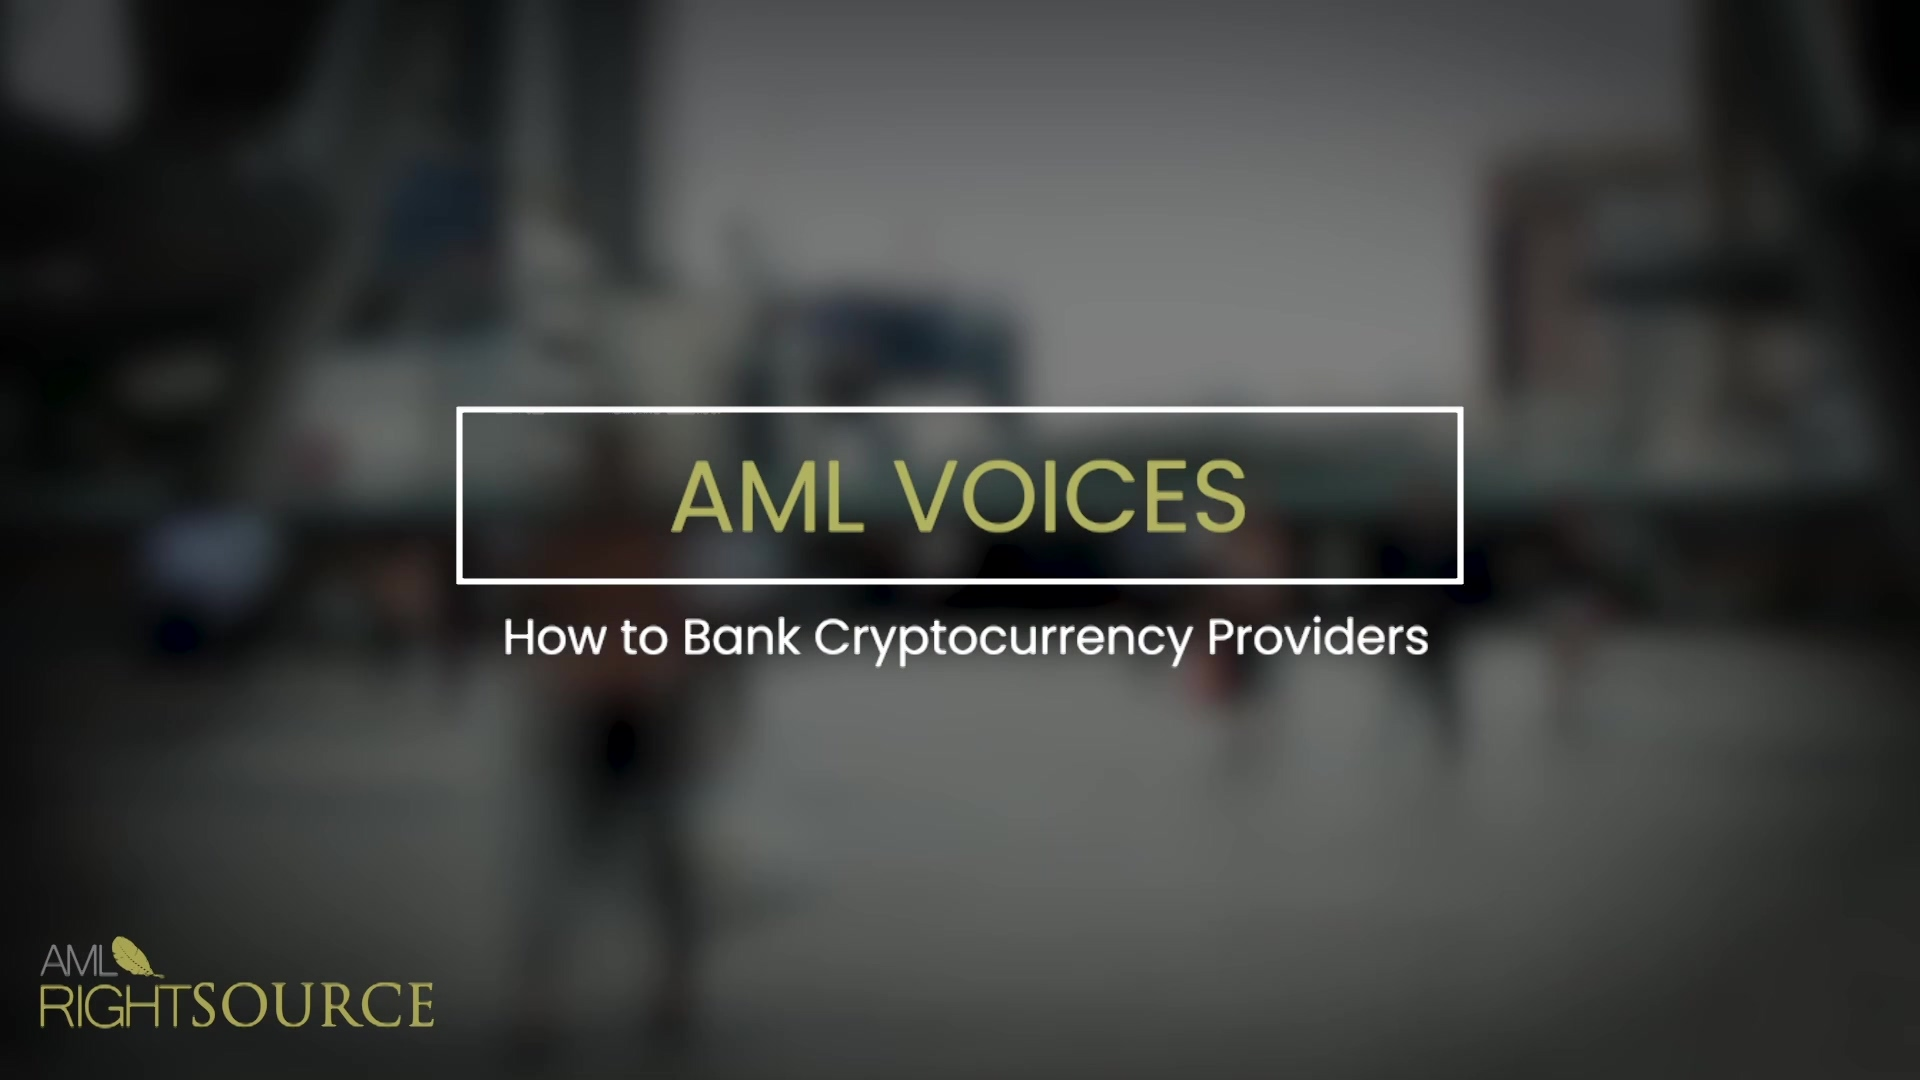 How to Bank Cryptocurrency Providers